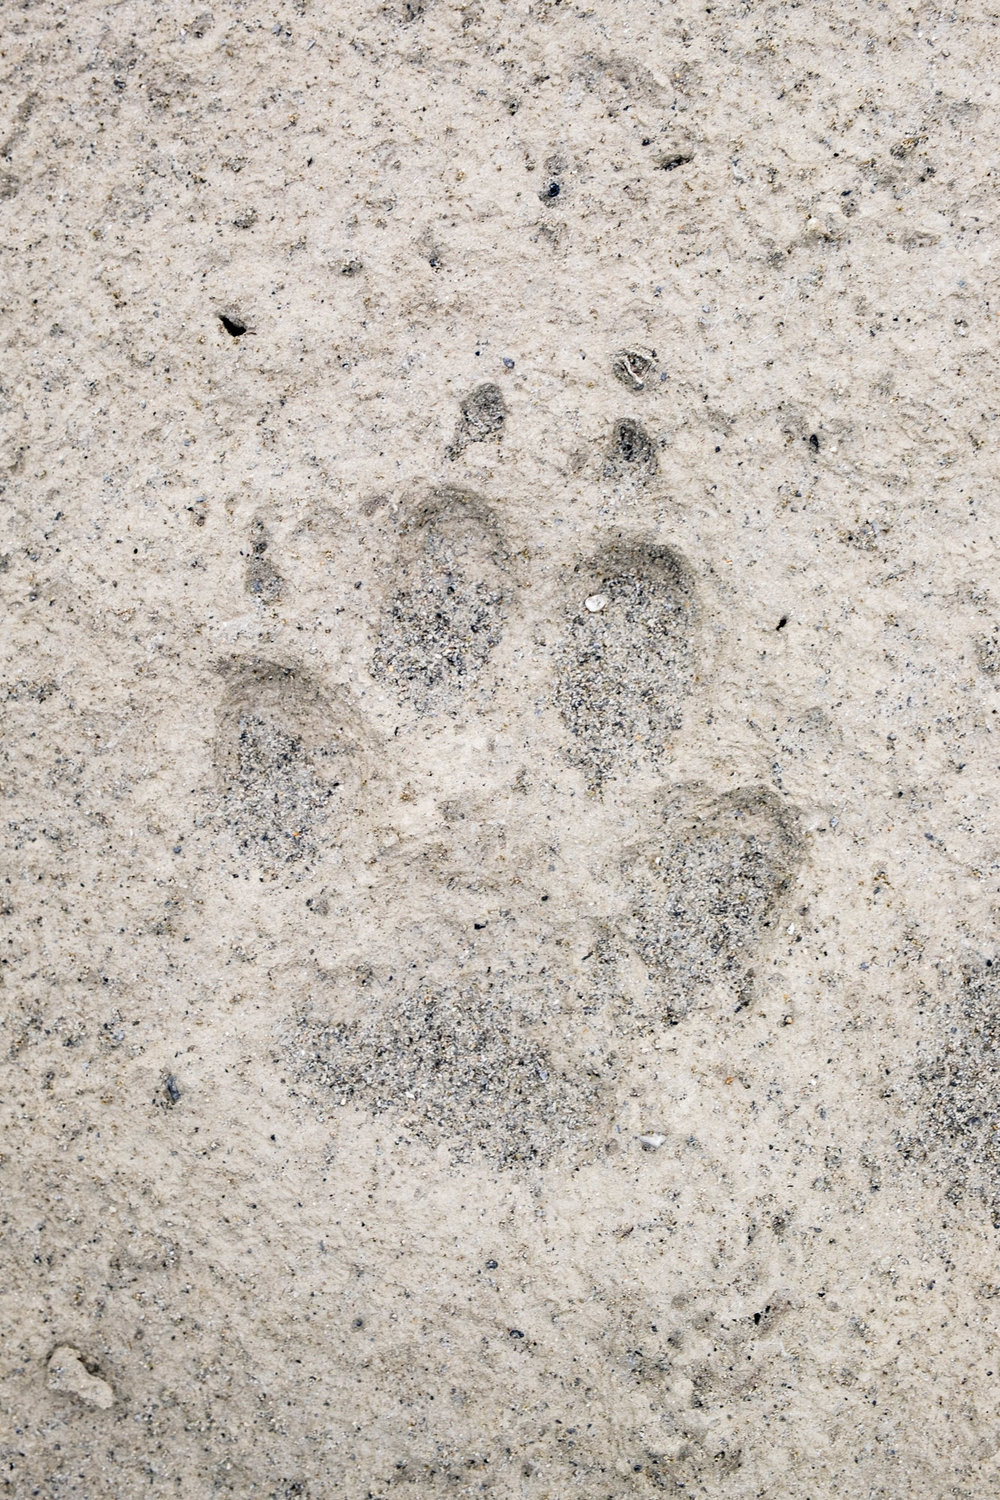 Everywhere we go we see bears (and bearprints). We thought we would see more caribou than bears, but that ended up being not ture. We saw a LOT of bears.